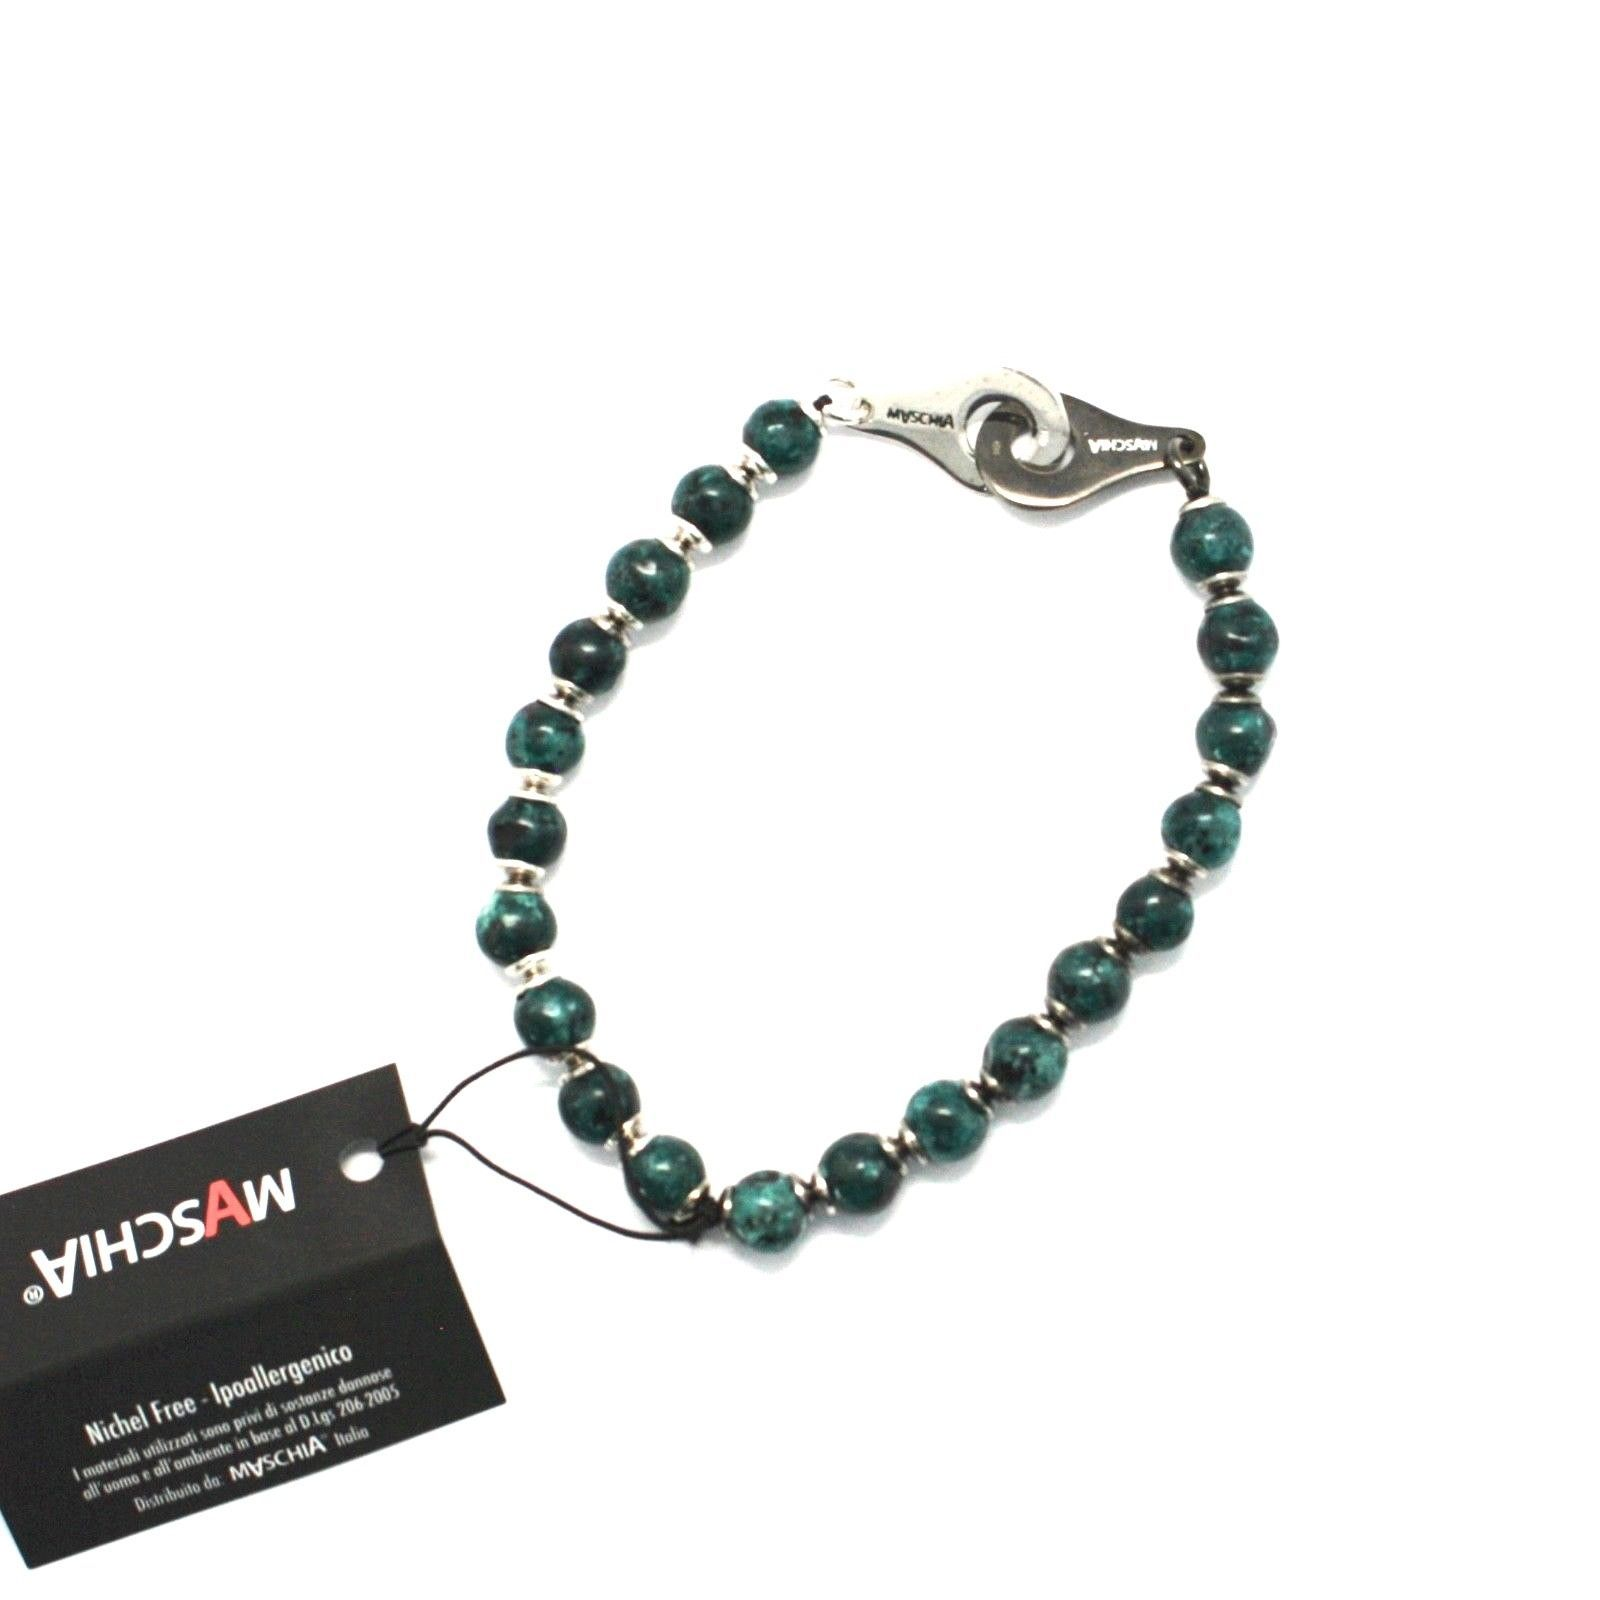 BRACCIALE IN ARGENTO 925 CON DIASPRO VERDE BSP-2 MADE IN ITALY BY MASCHIA